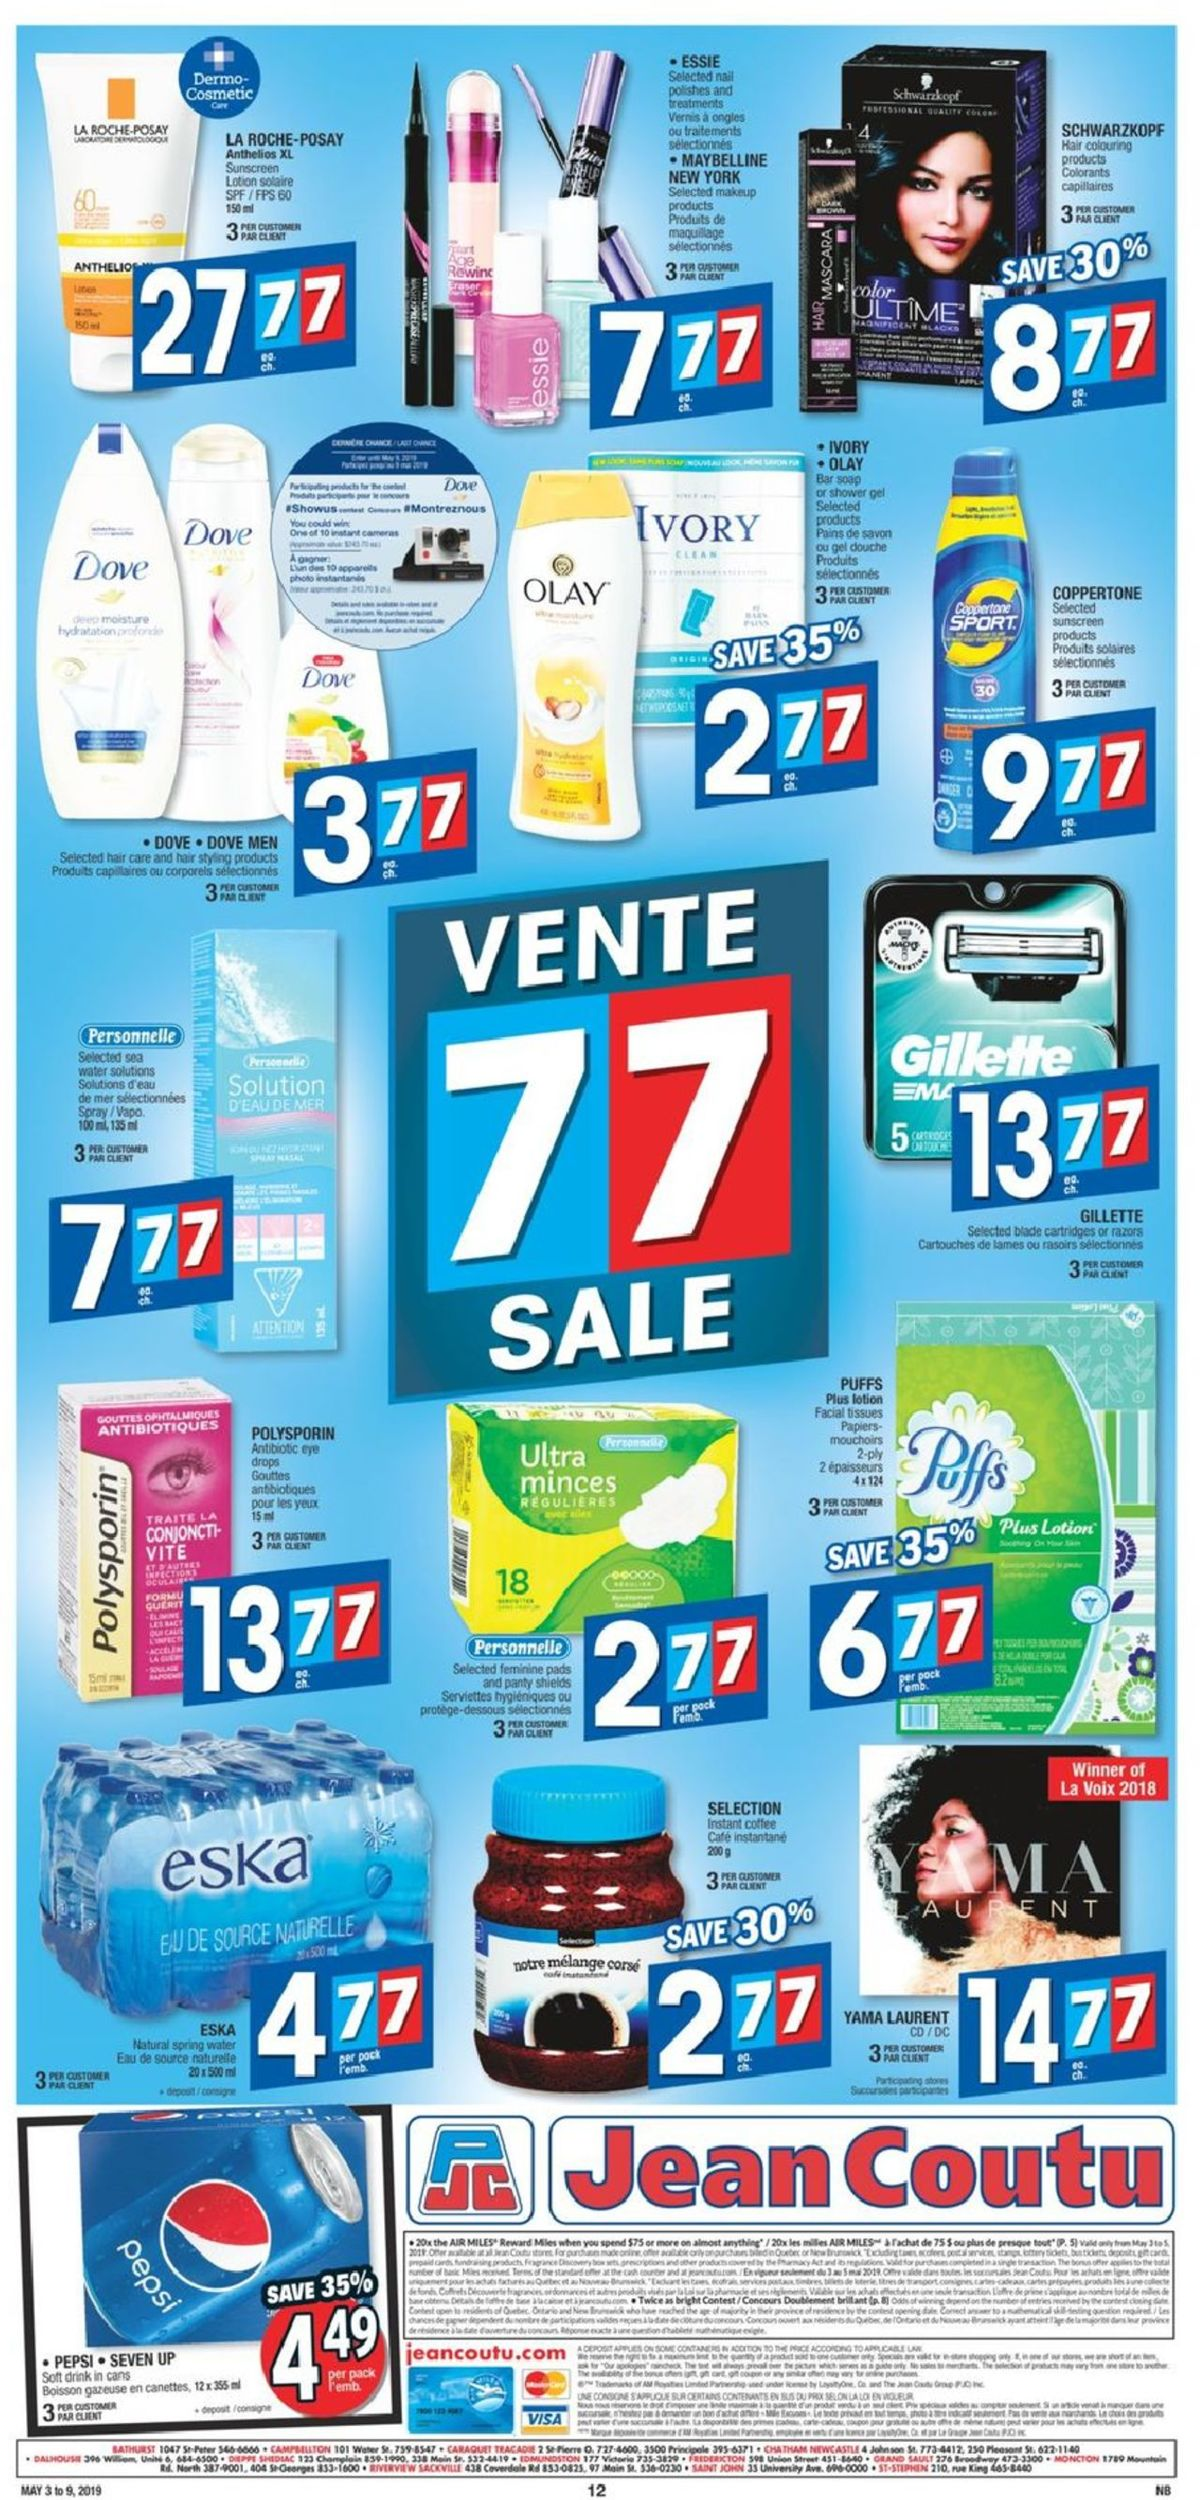 Jean Coutu Flyer - 05/03-05/09/2019 (Page 11)